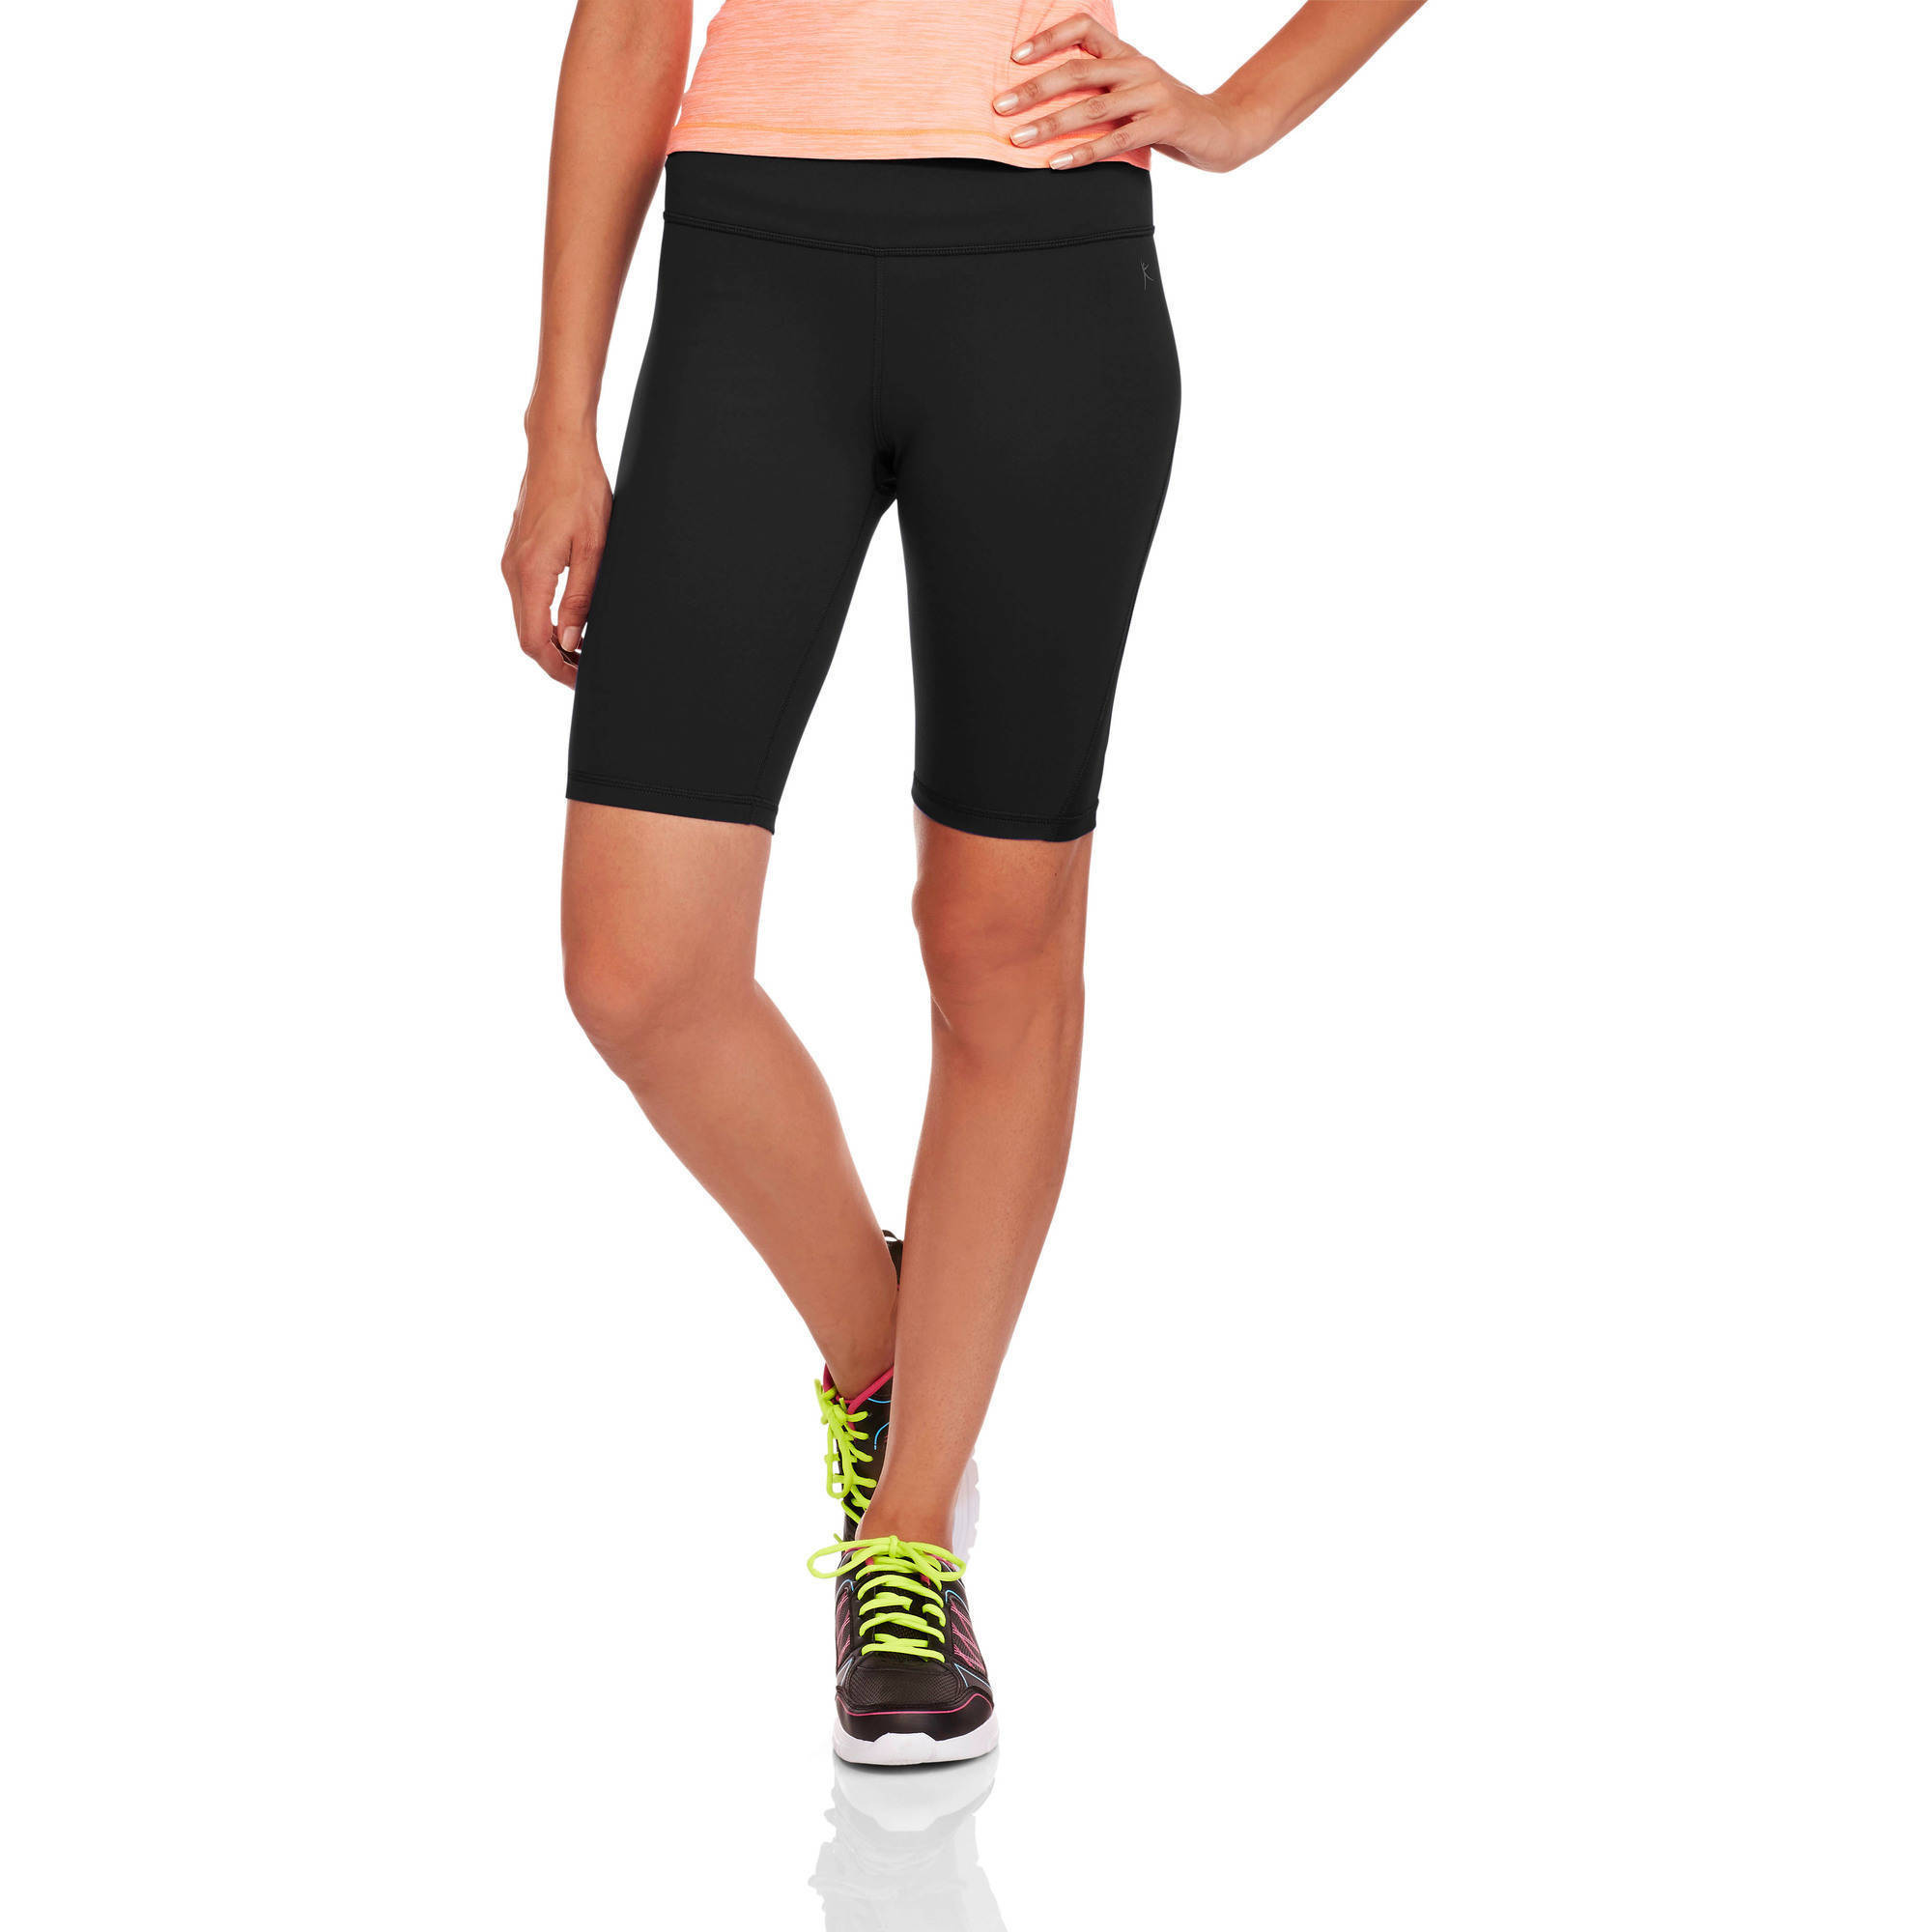 Danskin Now Women's Performance Compression Bermuda Shorts With Wicking Properties